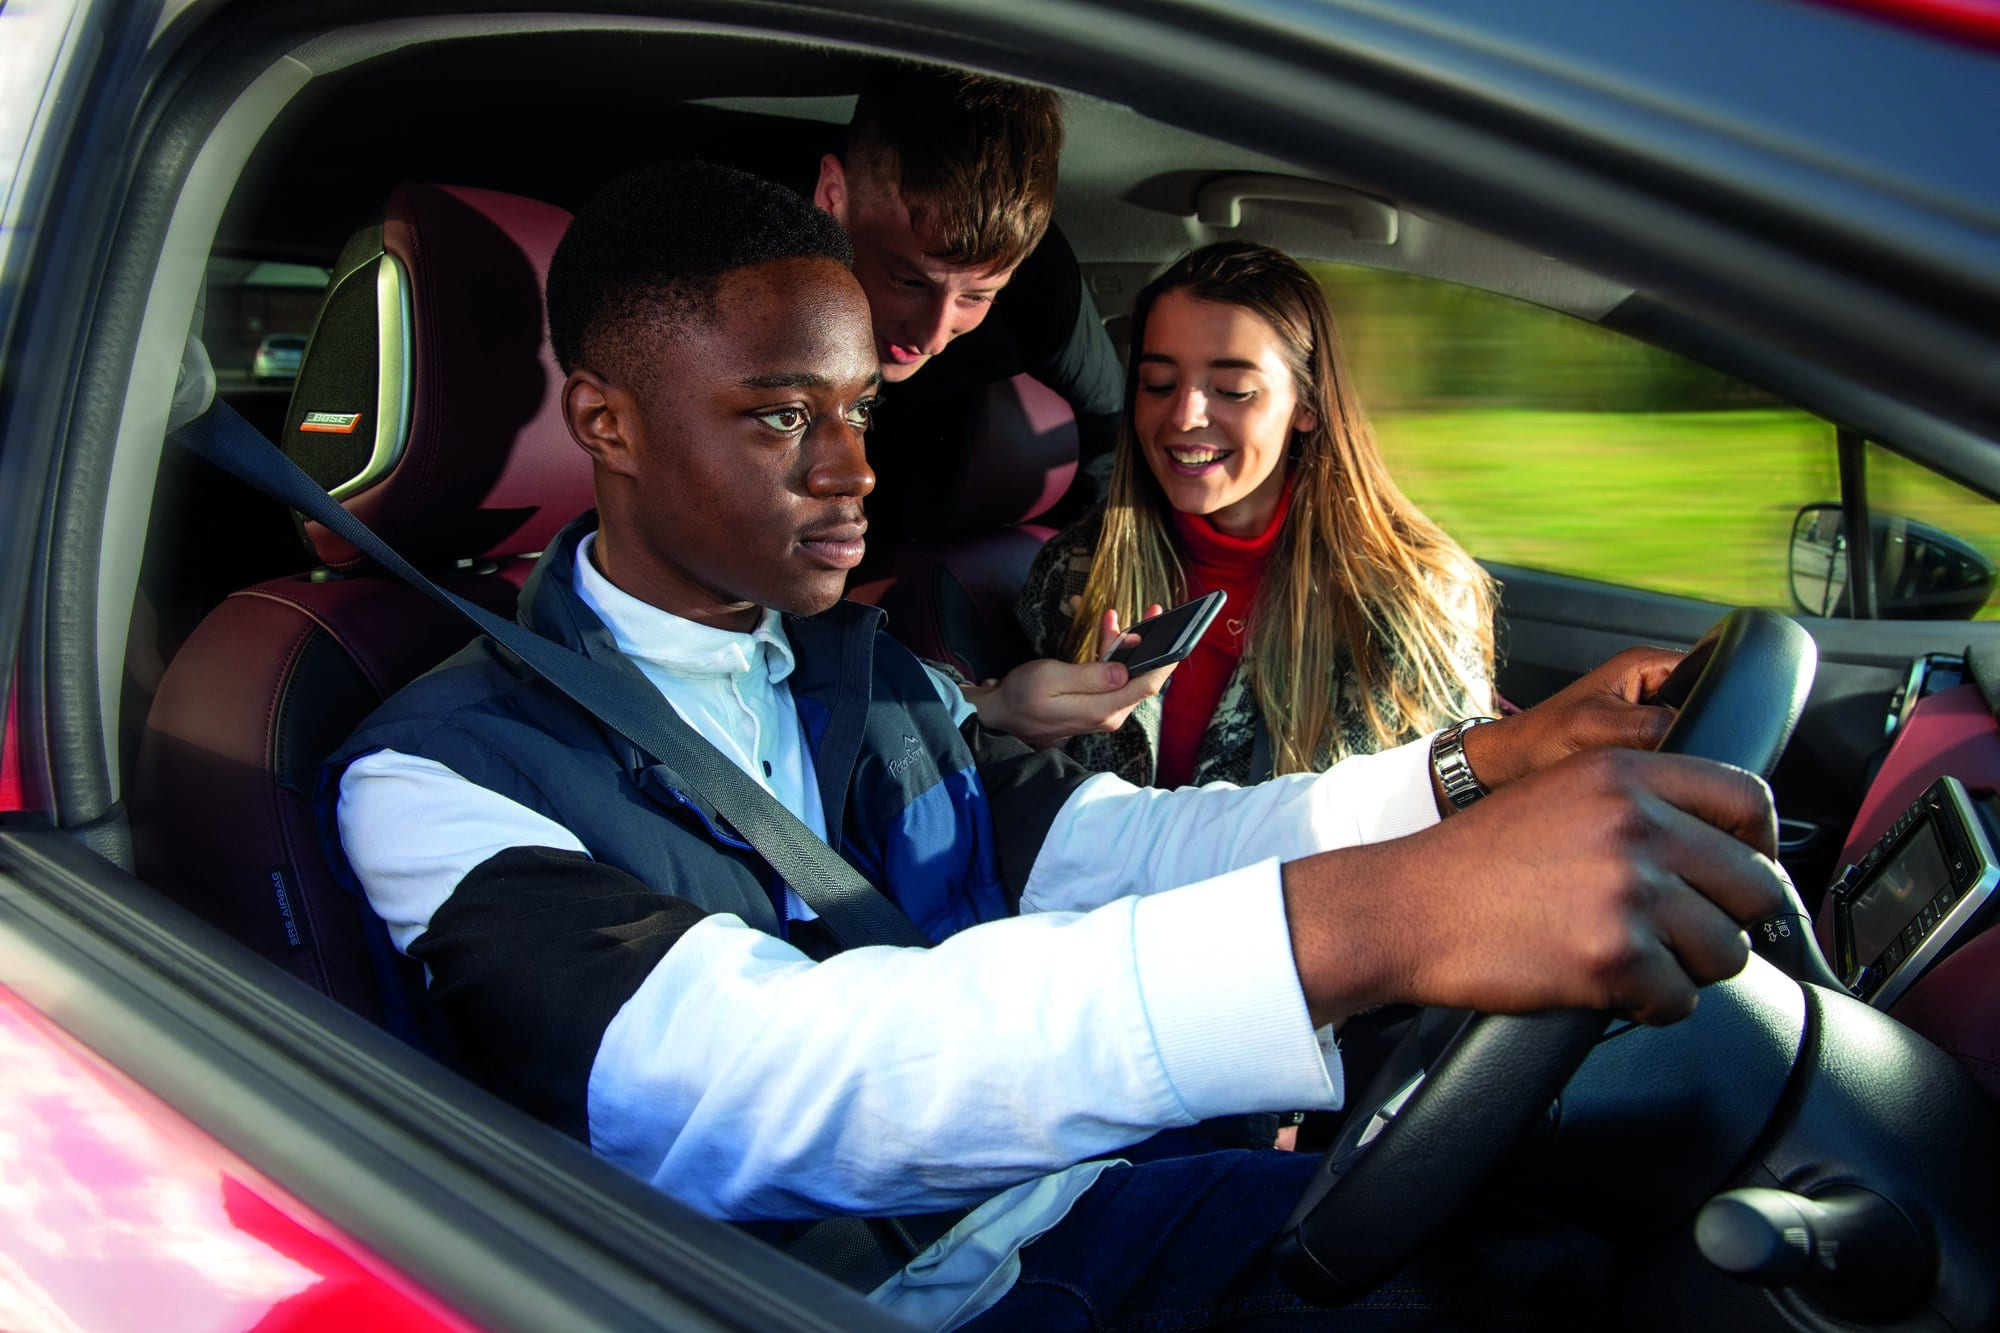 Dealing with distractions: keep your eyes on the road